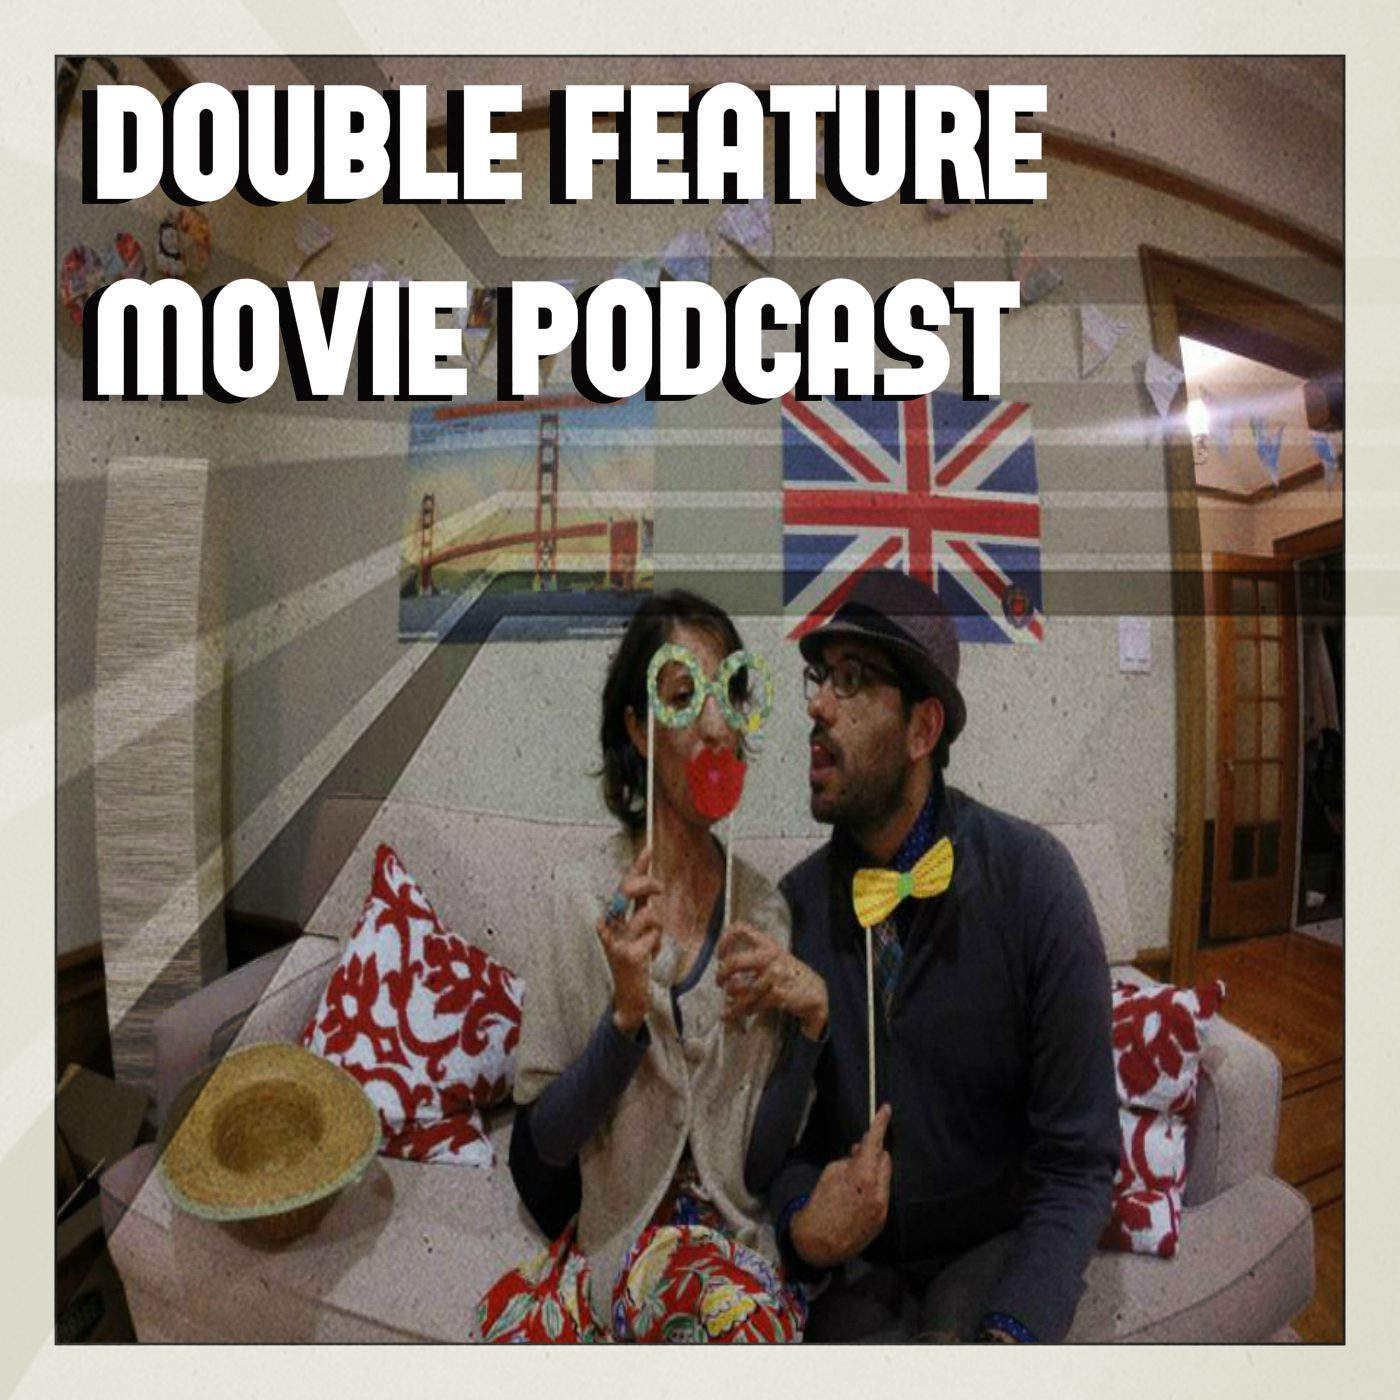 GAMbIT Magazine's Double Feature Movie Podcast